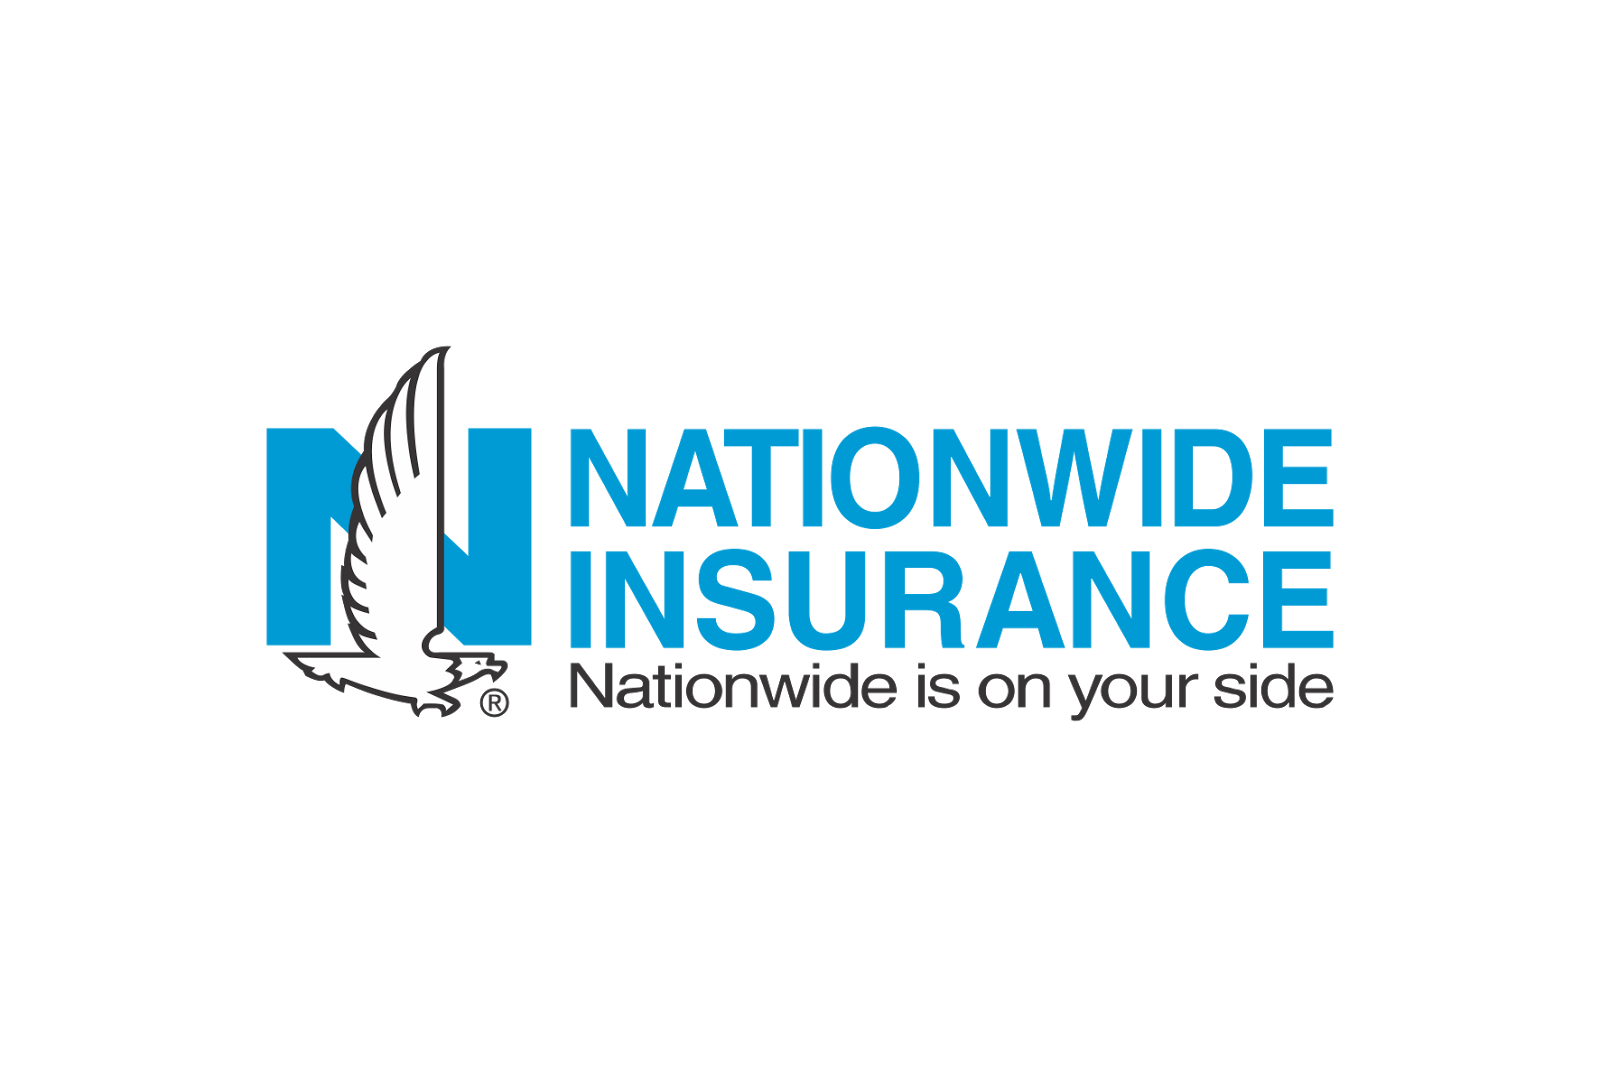 Nationwide Property Insurance Contact